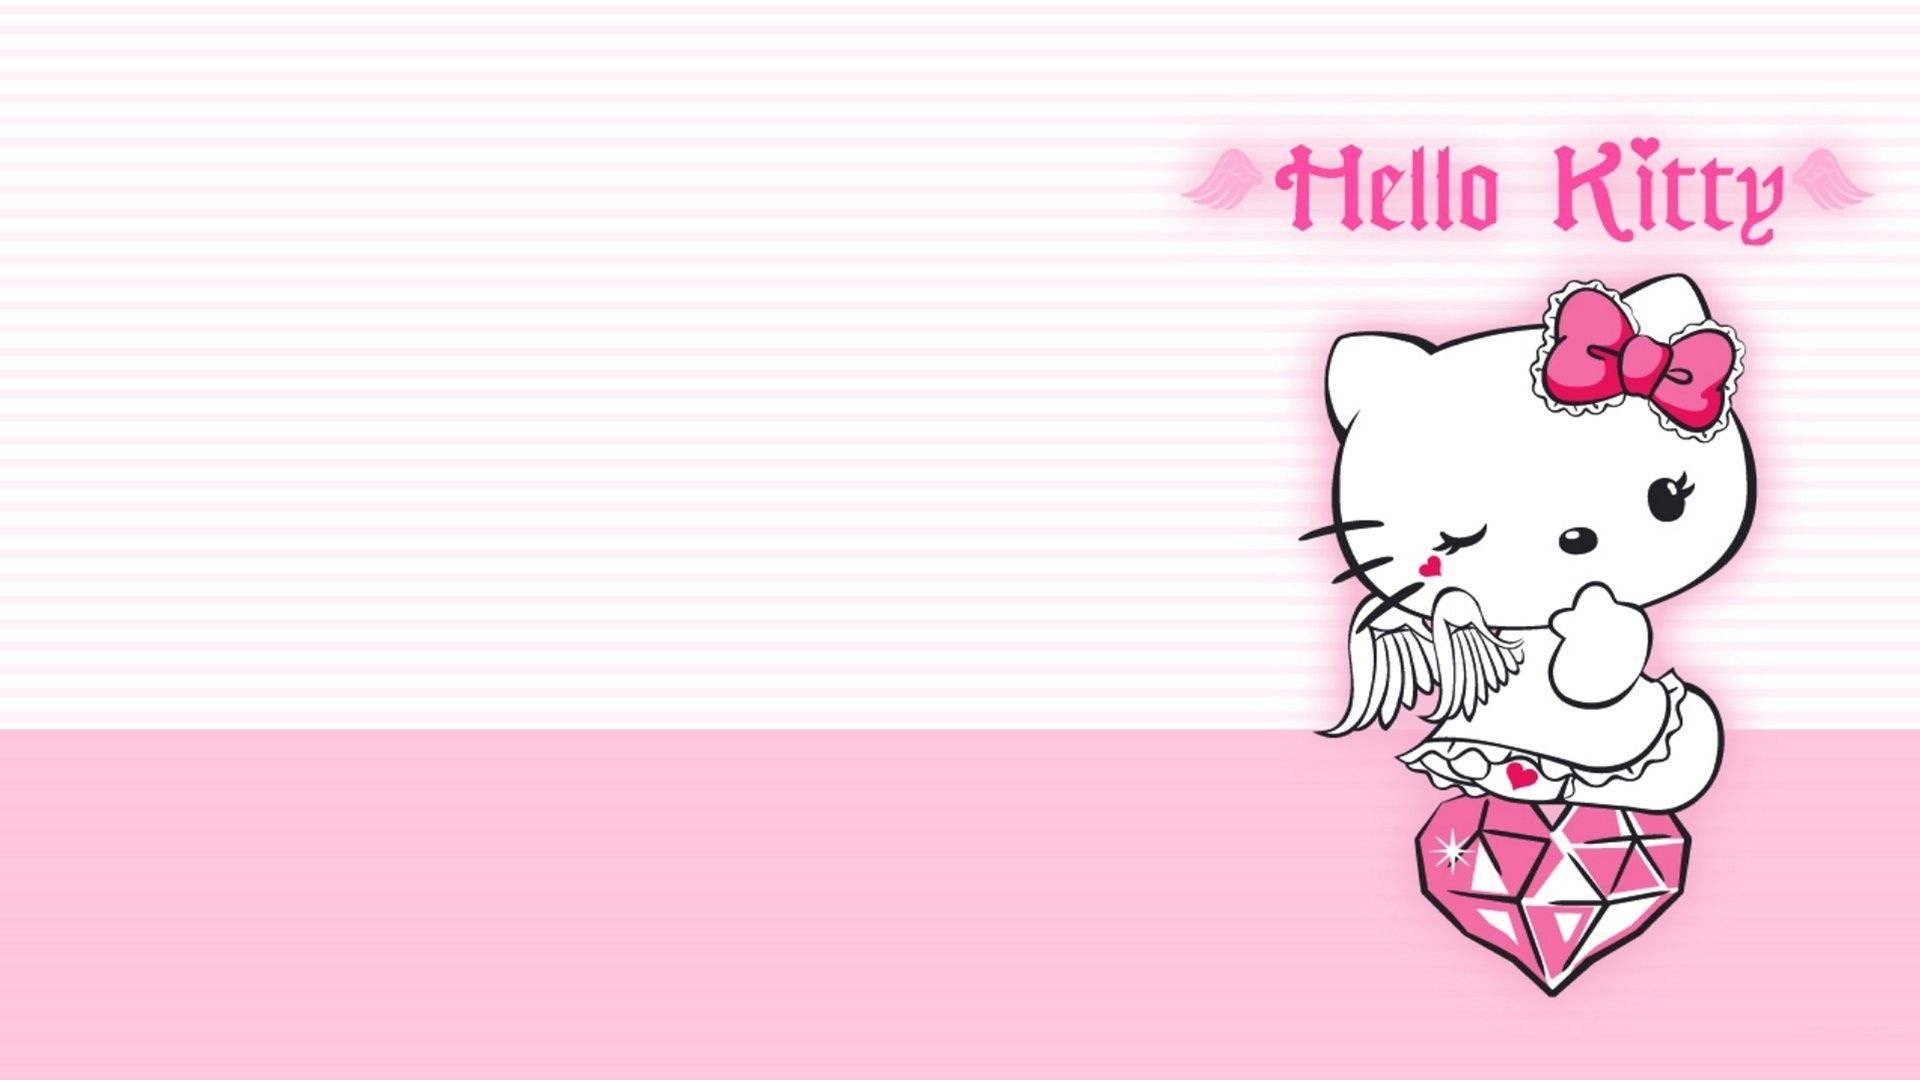 Download Now Free Printable Hello Kitty Baby Shower Invitation - Free Printable Hello Kitty Baby Shower Invitations